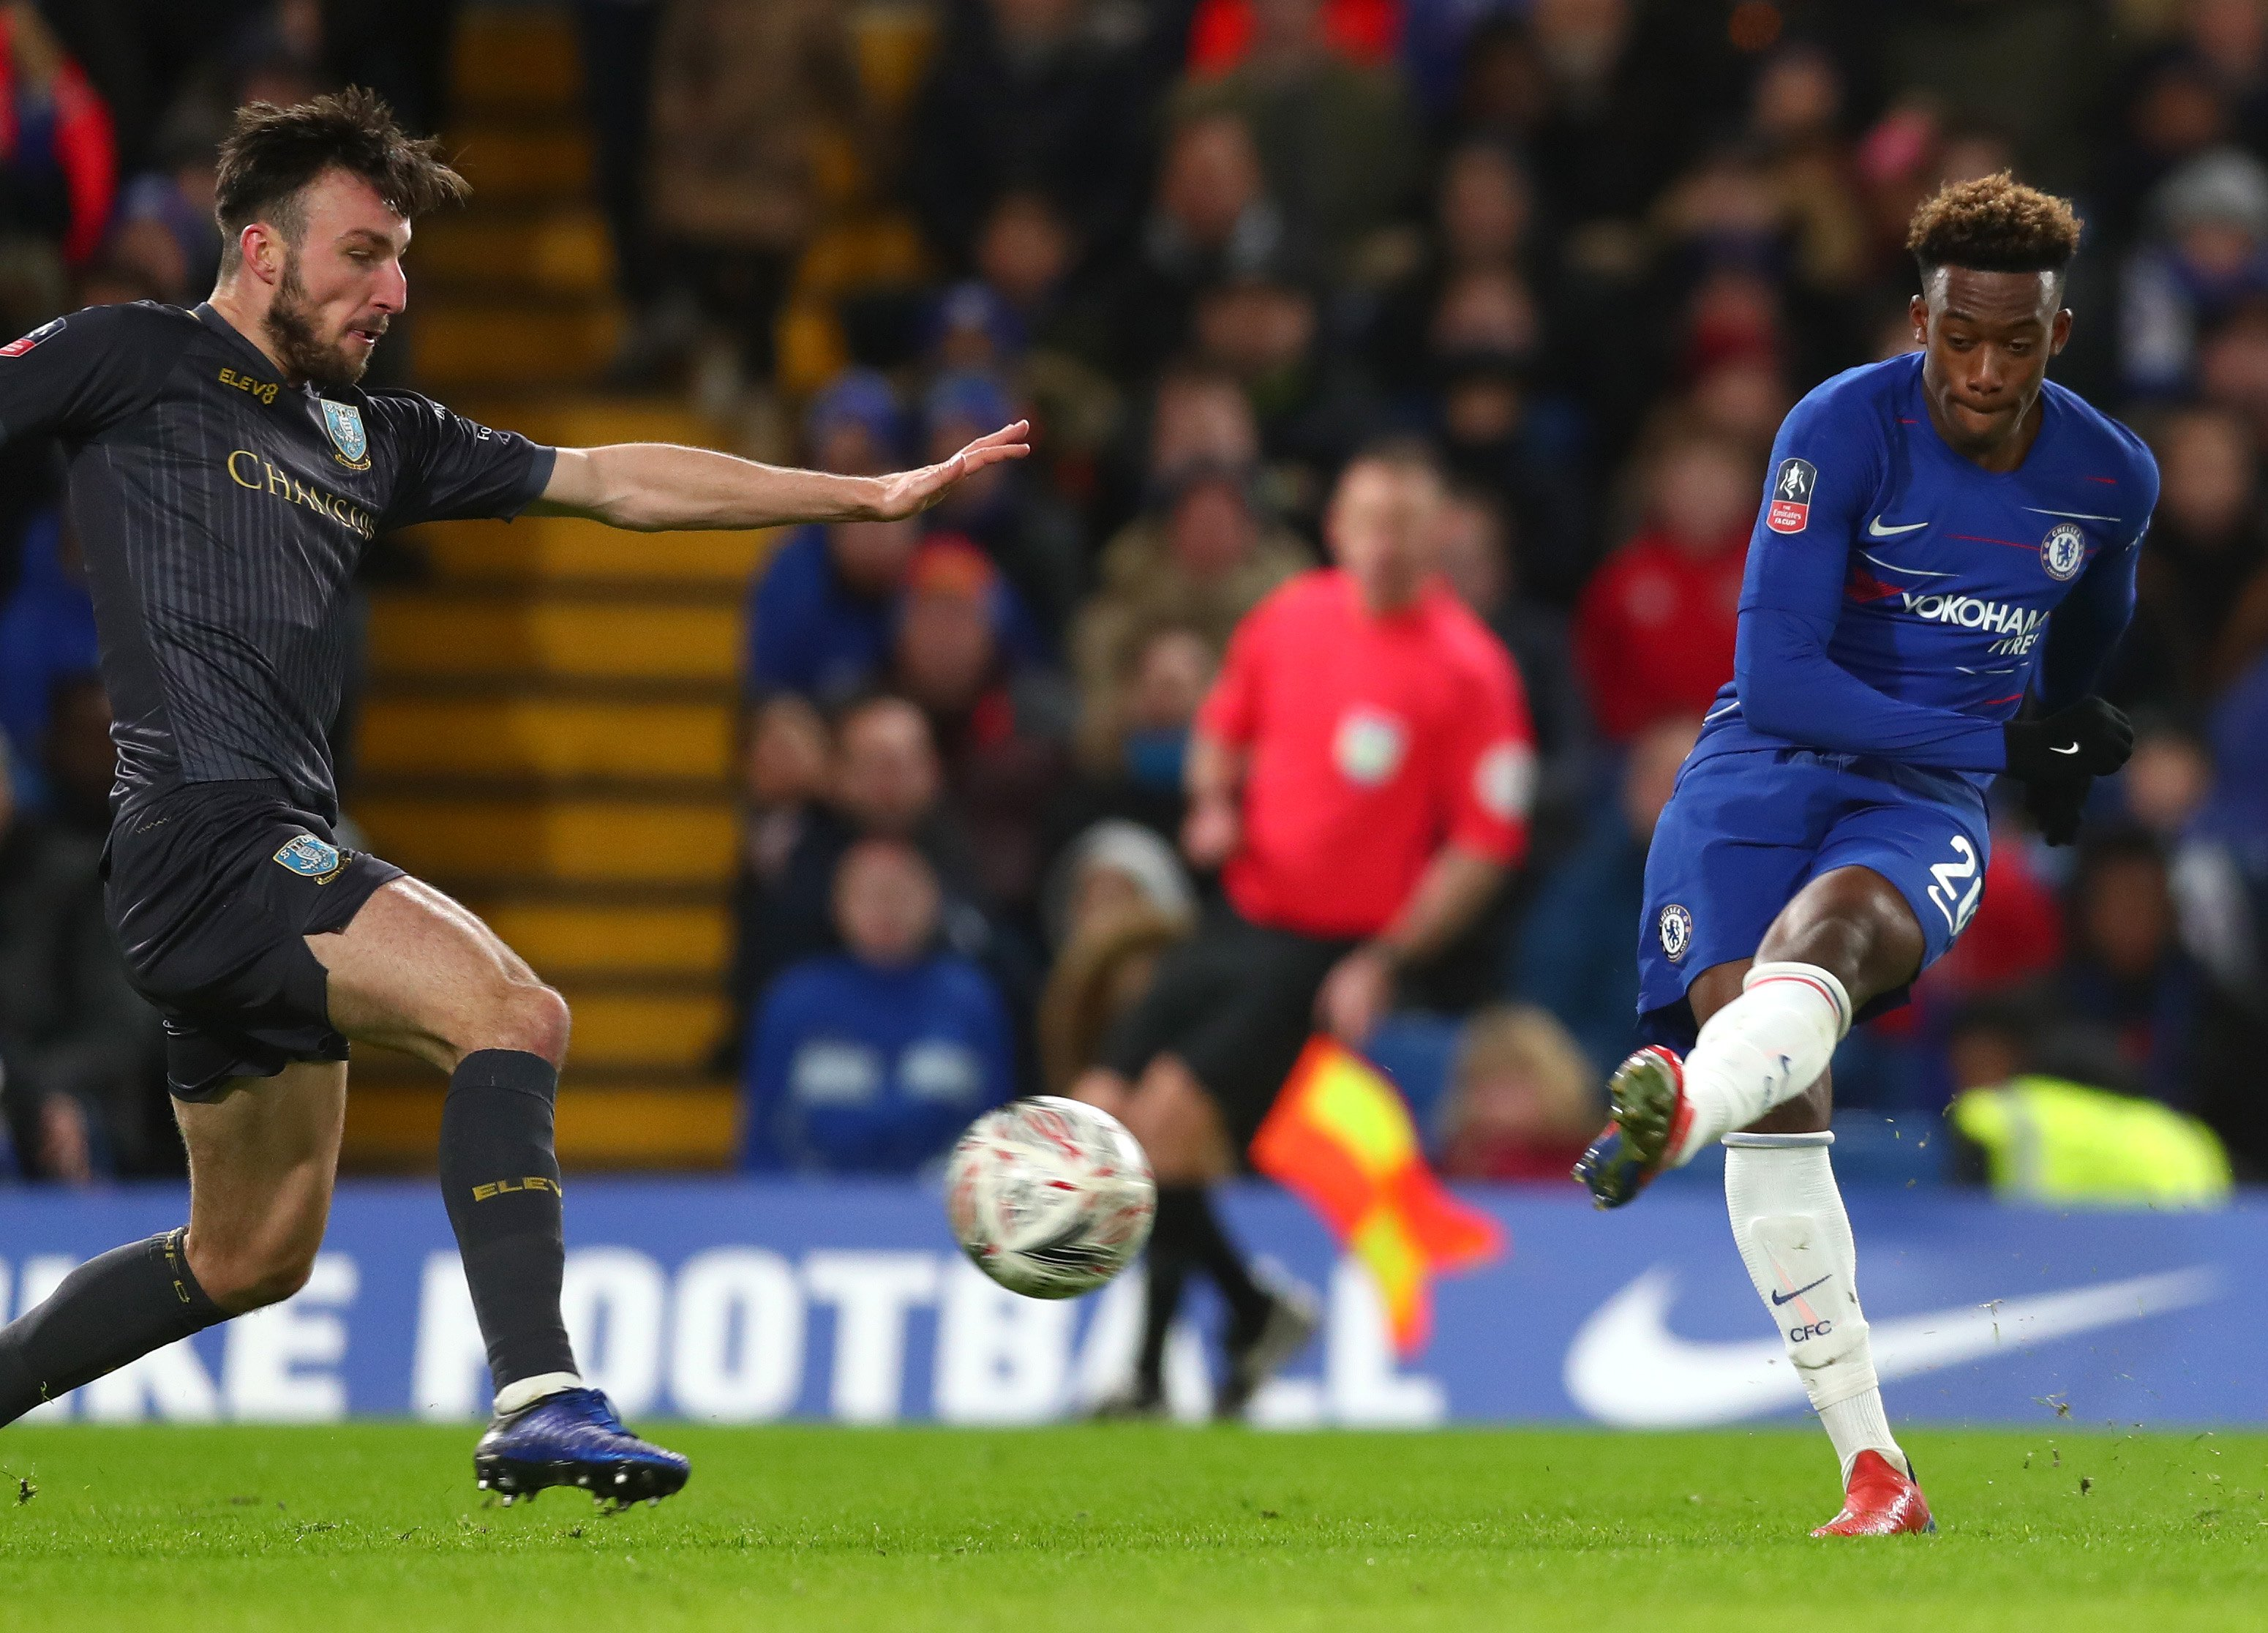 Higuain Debuts; Willian Nets Double, Hudson-Odoi Scores As Chelsea Pip Wednesday To Reach FA Cup 5th Round